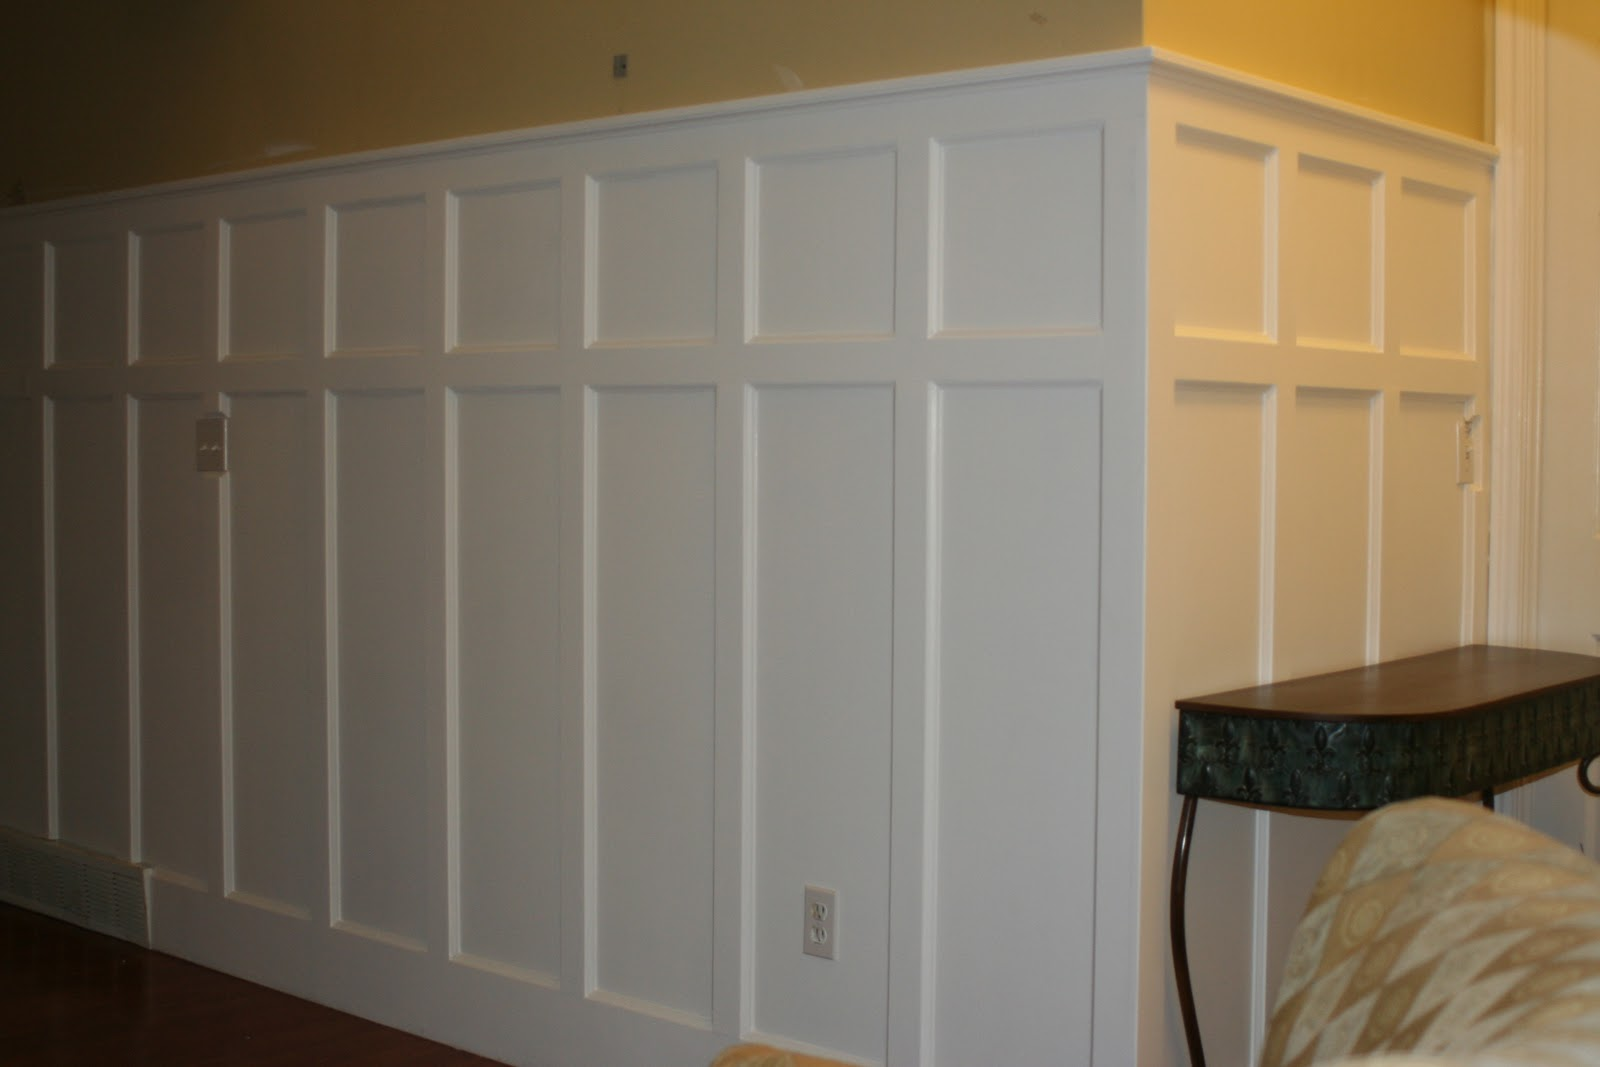 DIY Panel Installing Wainscoting Correctly (Image 3 of 10)